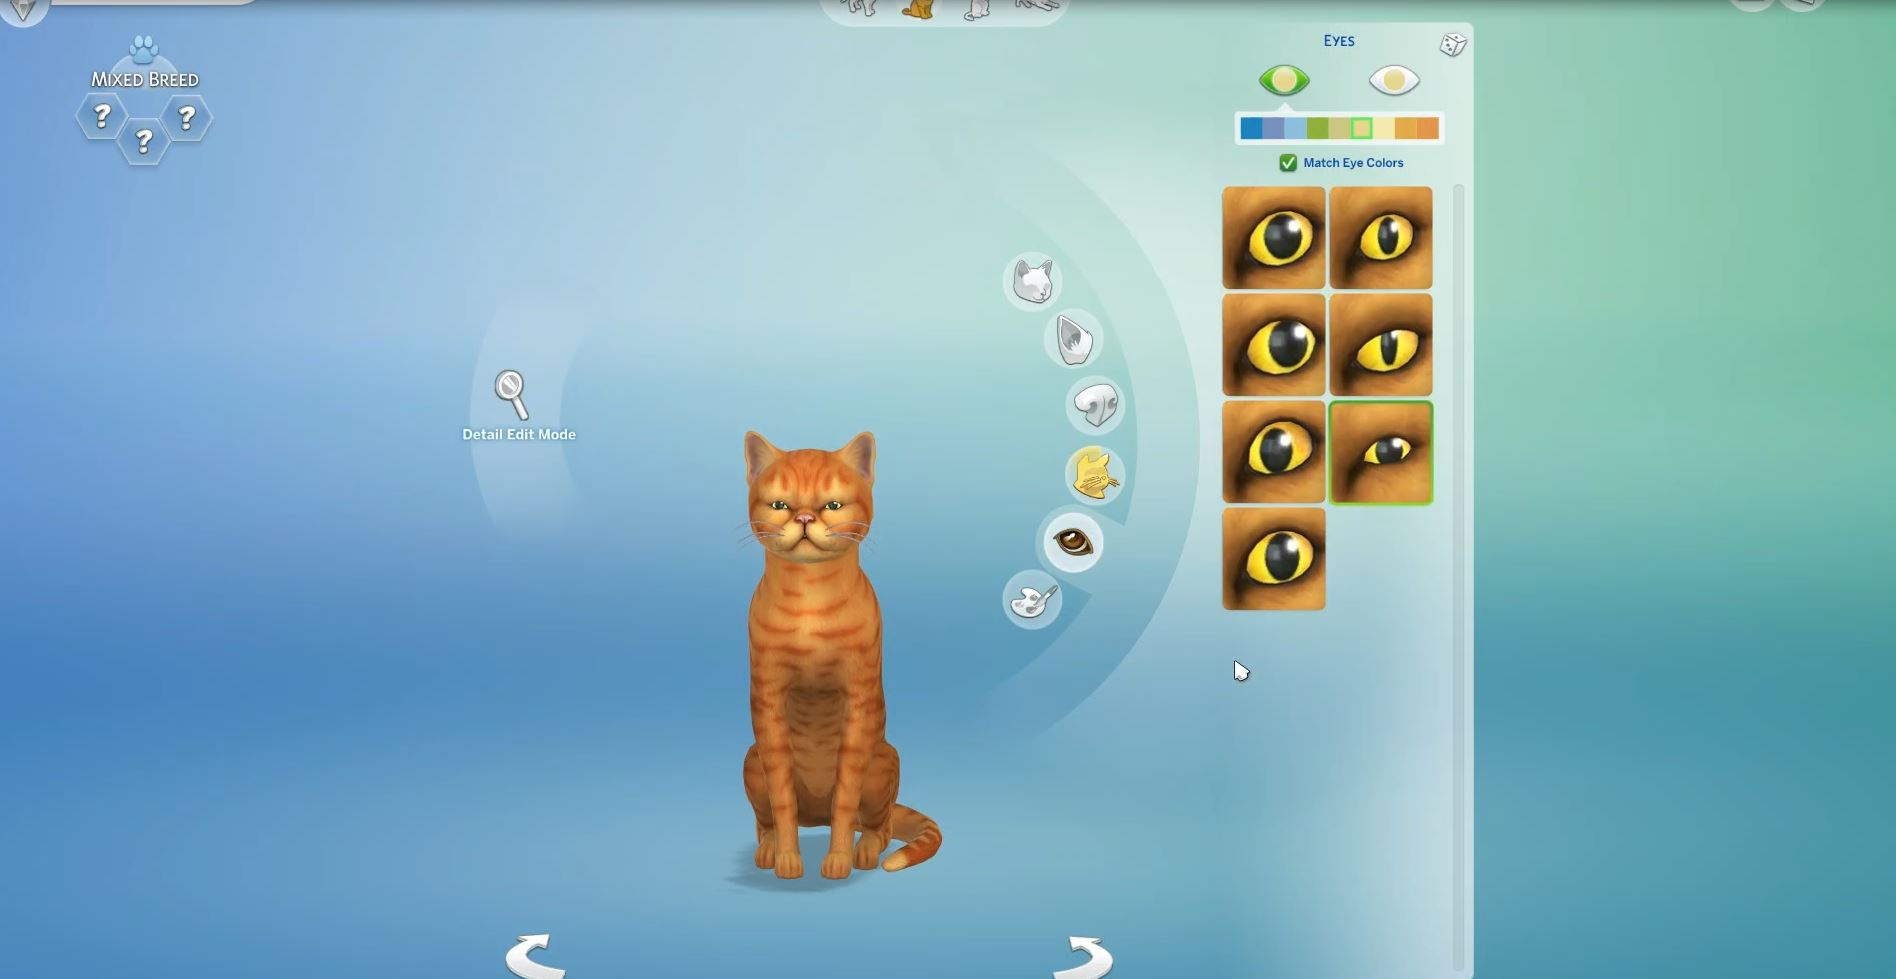 The Sims 4 Cats & Dogs: First Look at Heterochromia for Pets | SimsVIP